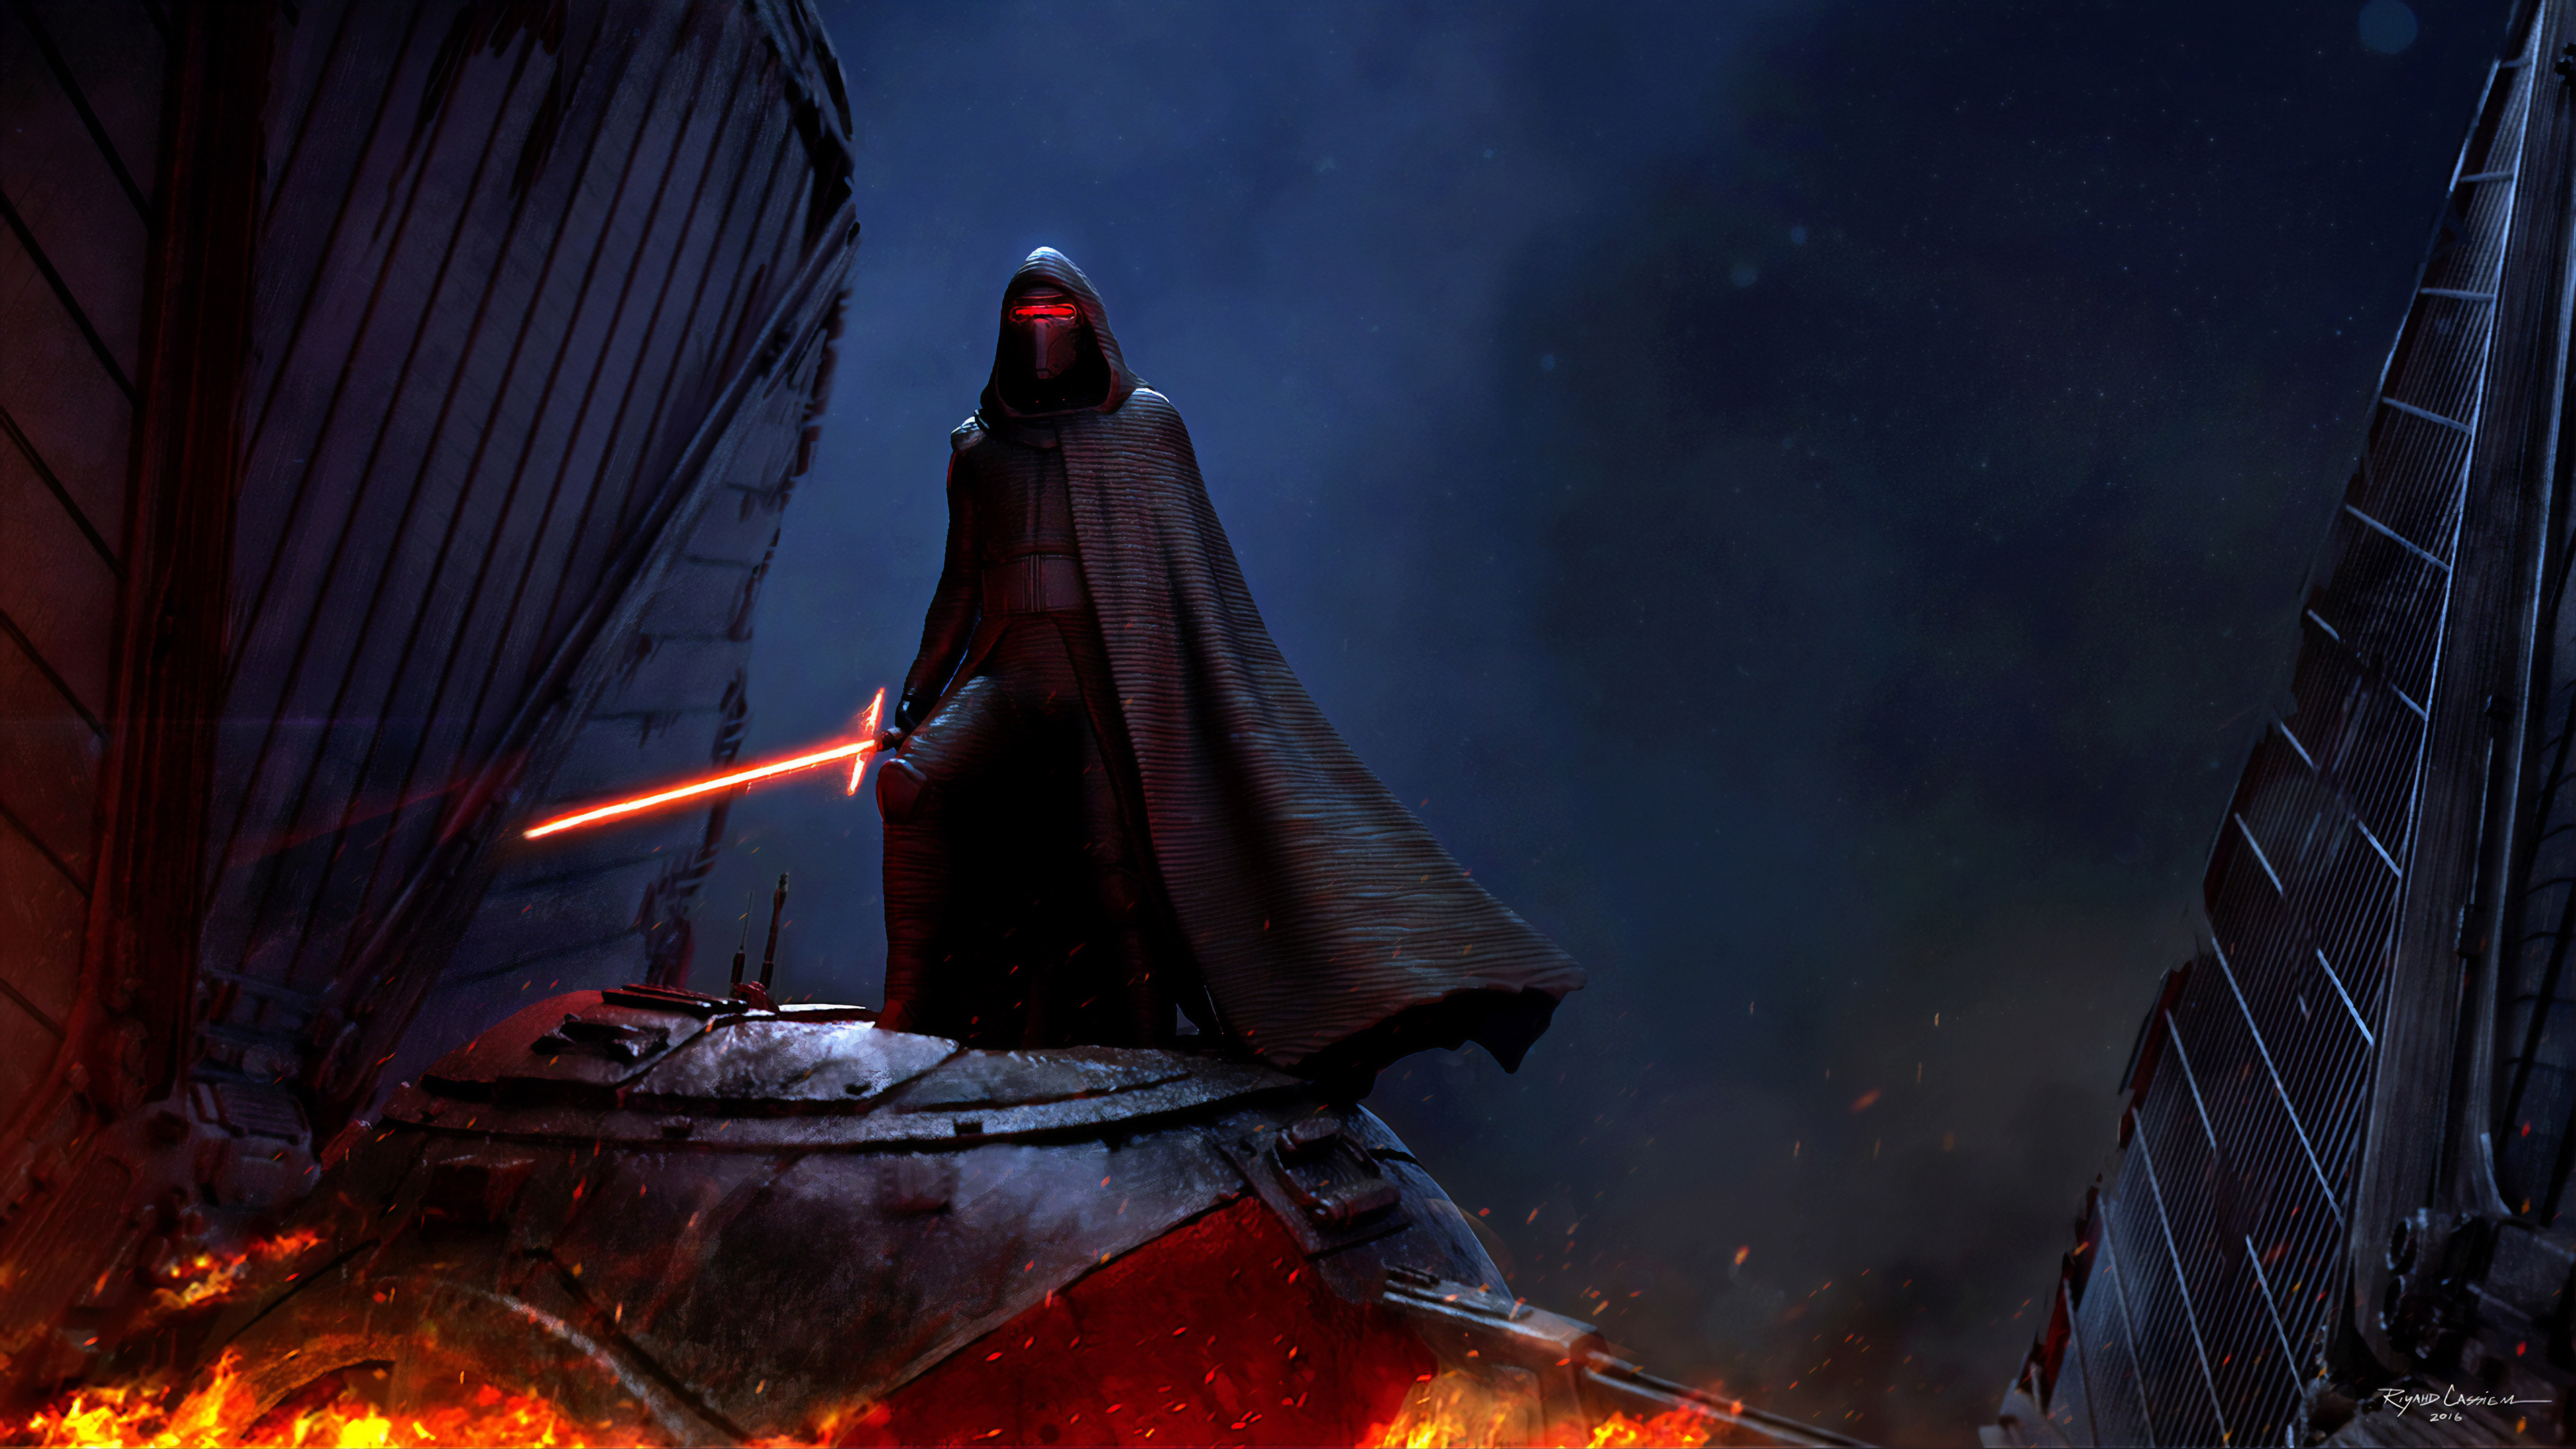 Kylo Ren Star Wars 4k Hd Superheroes 4k Wallpapers Images